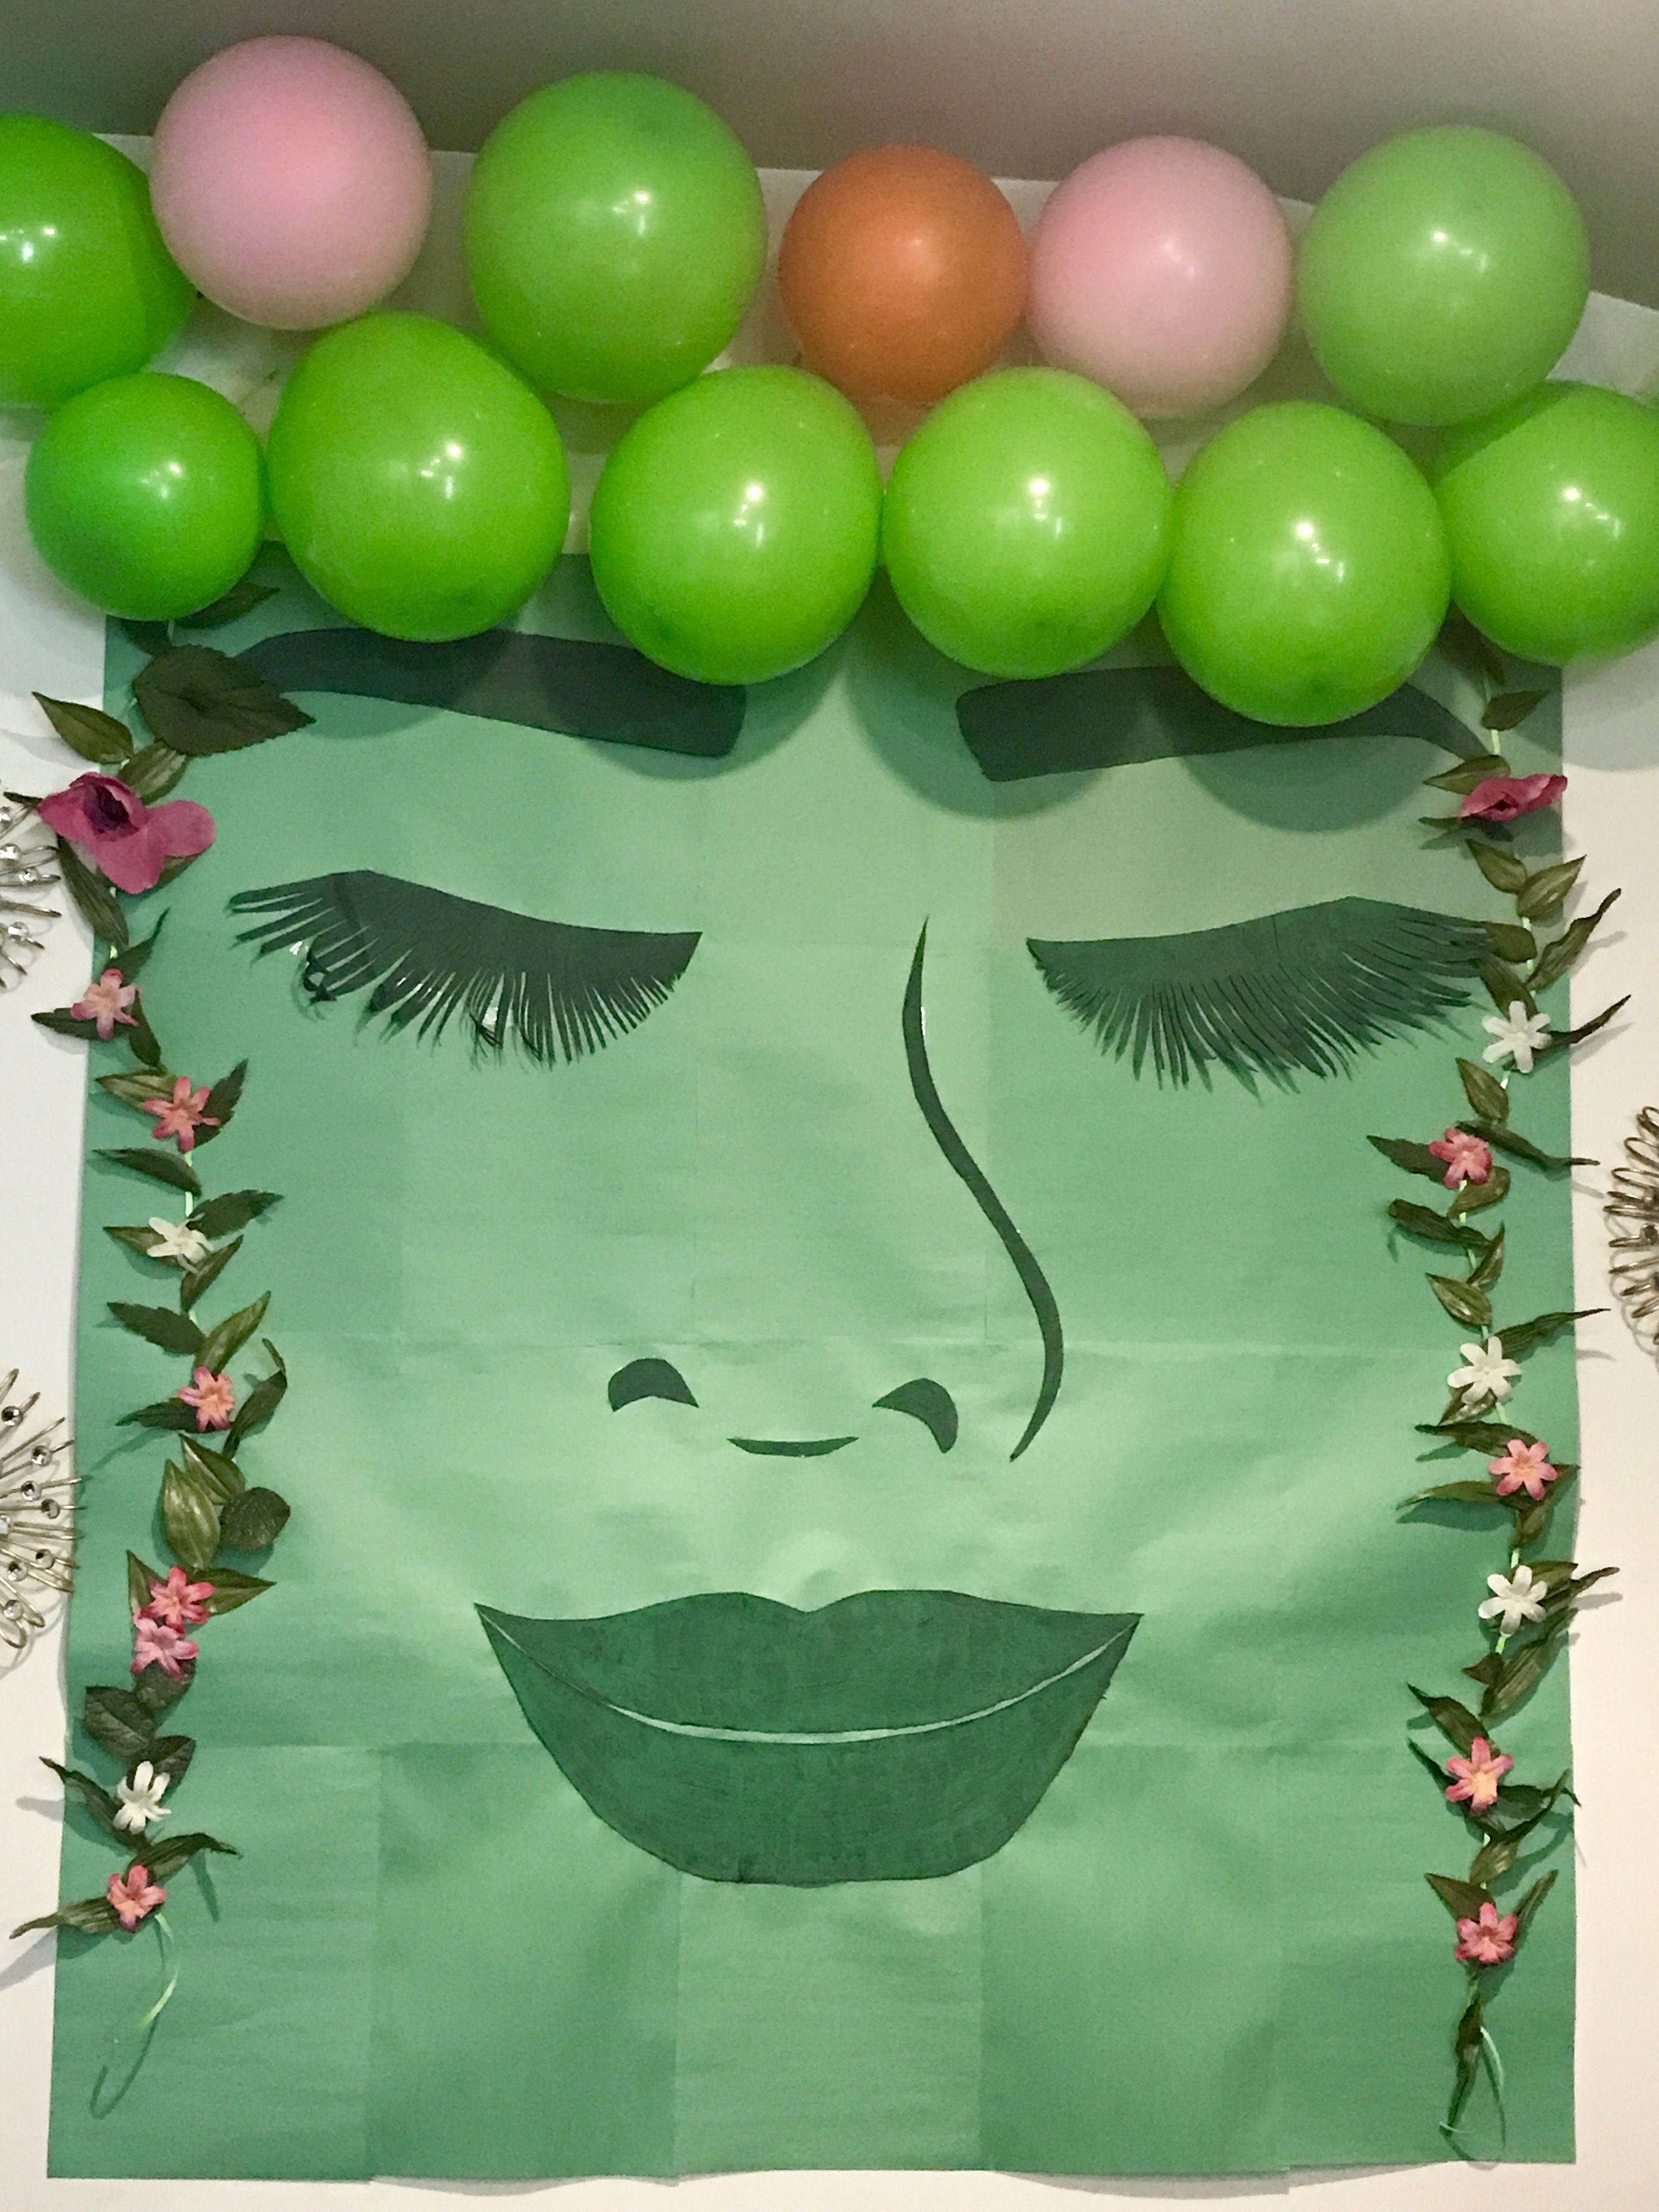 Diy Wall Decor For Birthday : Te fiti from moana movie wall decoration for